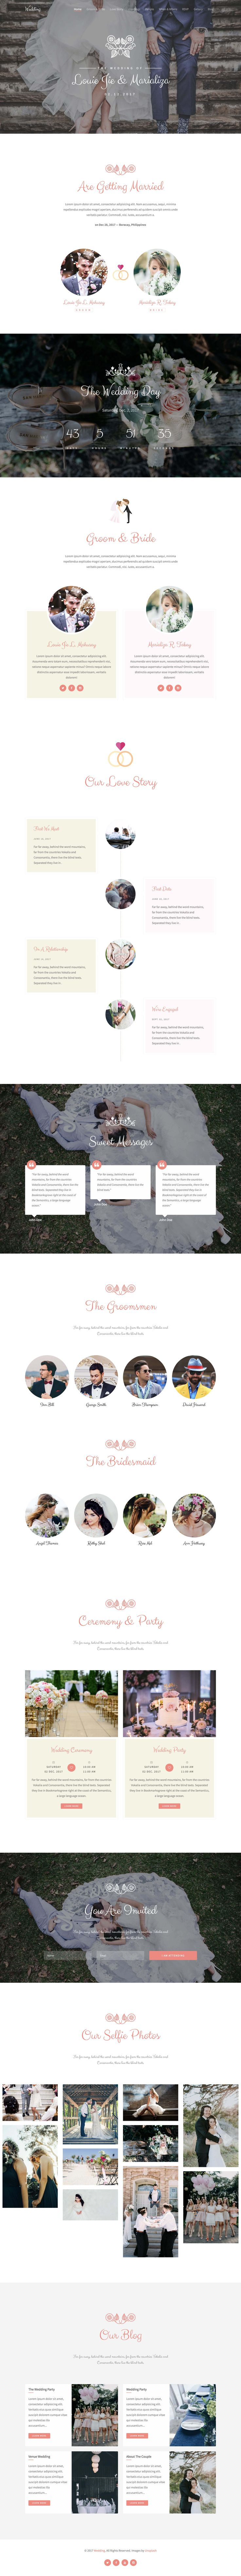 The team over at Qbootstrap have provided us with this FREE One Page HTML Wedding template built on the Bootstrap Framework. The long-scrolling template comes with 3 header options: parallax, video and Flexslider. Other features include a sticky header (that smooth scrolls to sections), countdown timer, love story timeline, groomsmen section, bridesmaids section, RSVP form and photo gallery. A very generous freebie, thank you!